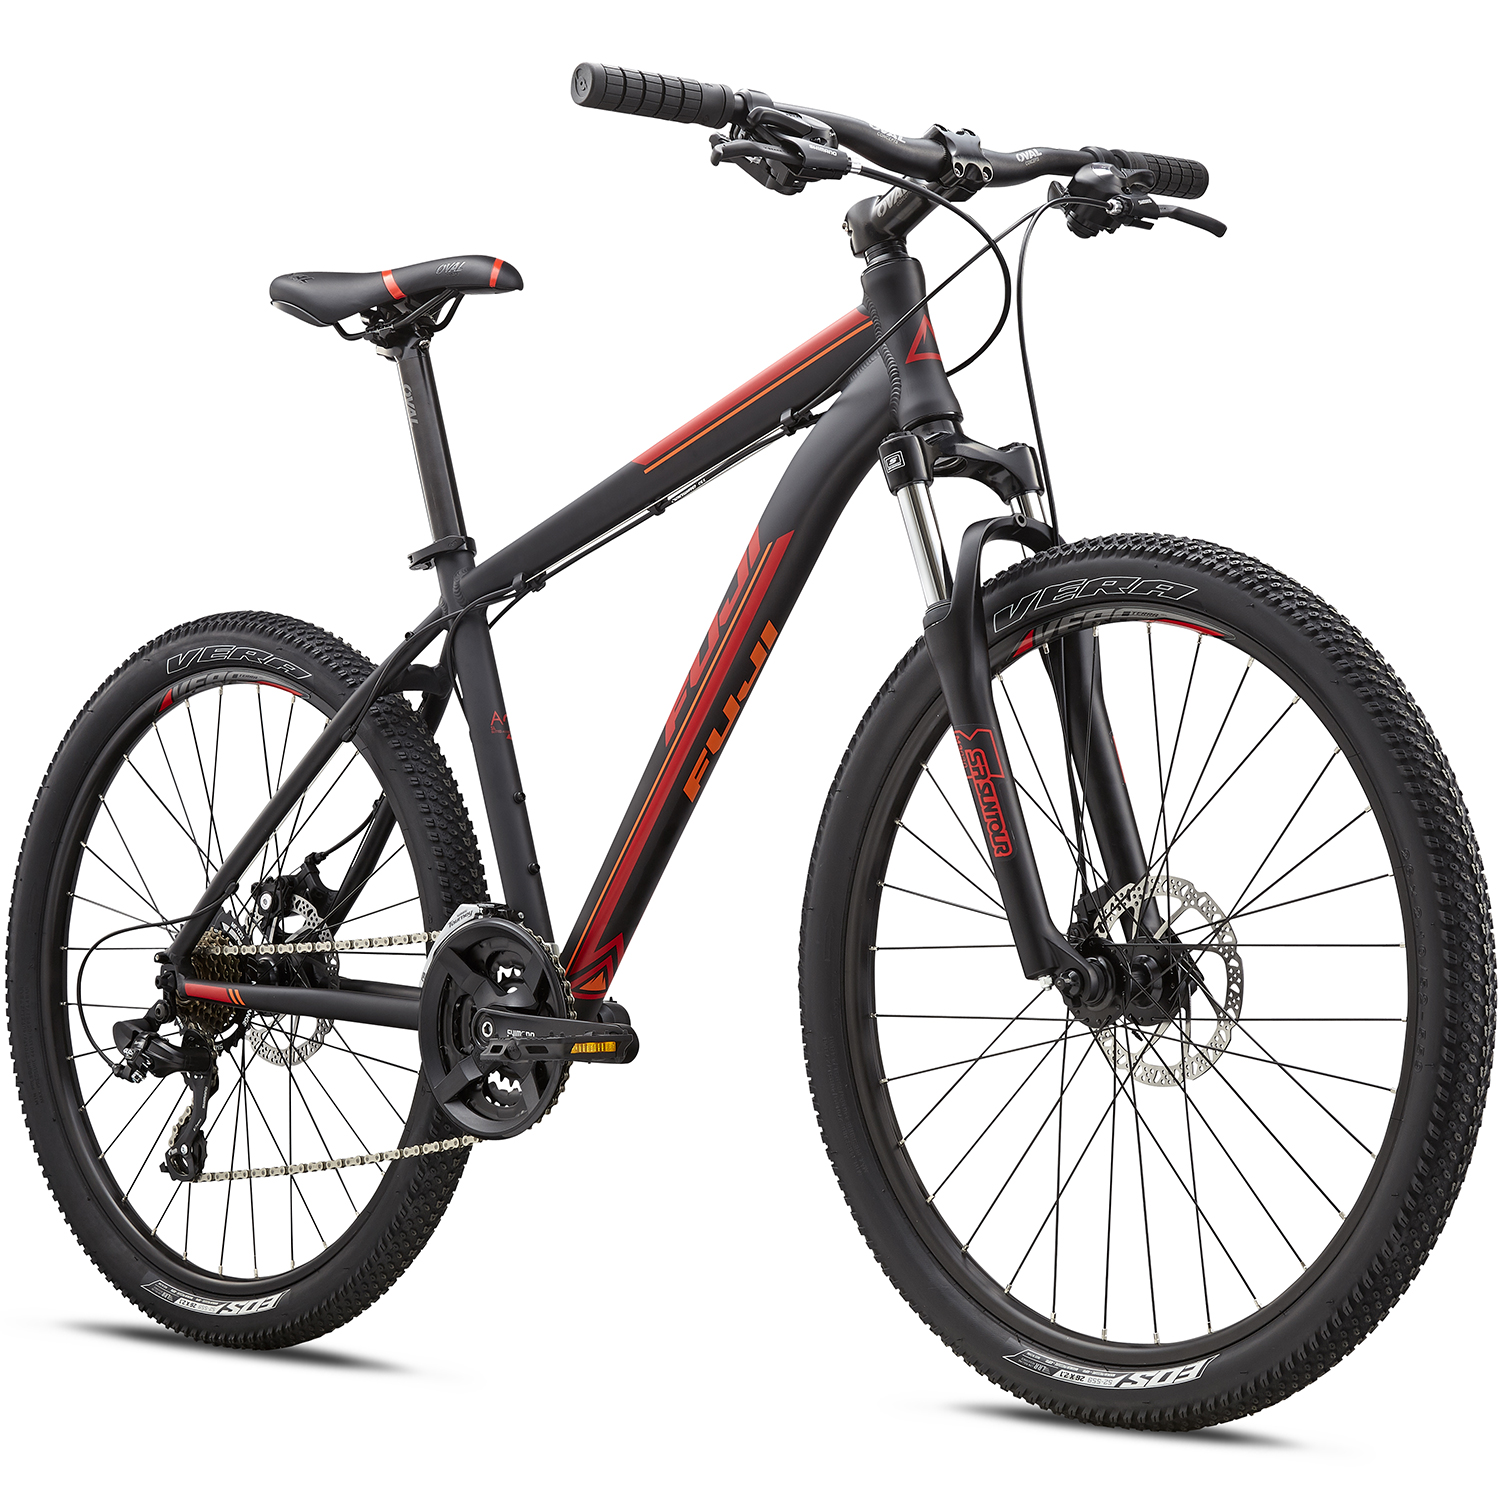 26 zoll mtb fuji nevada 26 1 9 sport trail mountainbike. Black Bedroom Furniture Sets. Home Design Ideas